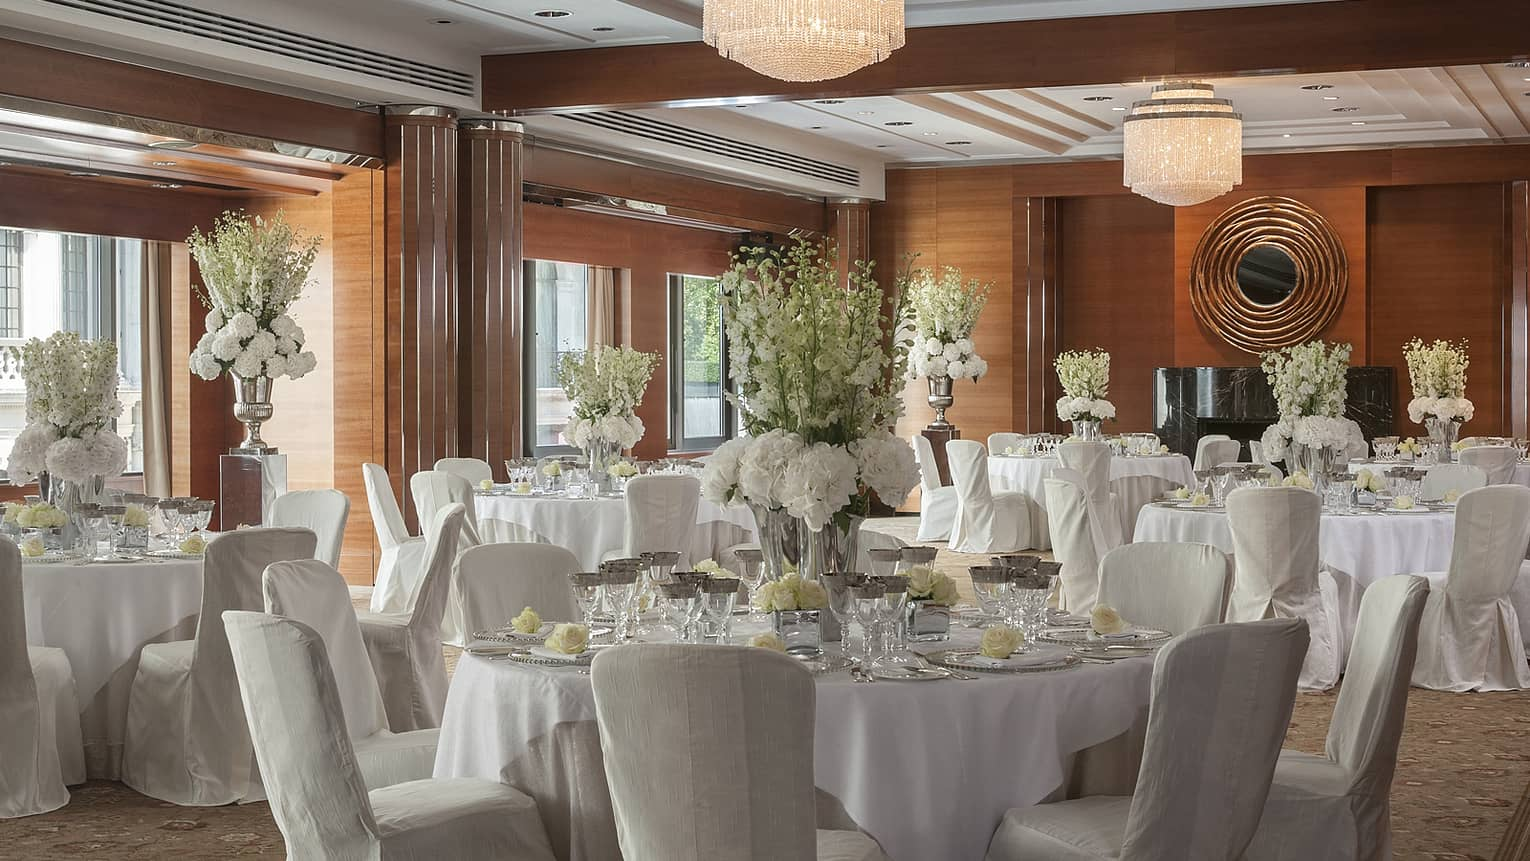 Sunny ballroom event with round banquet tables, chairs with white linens